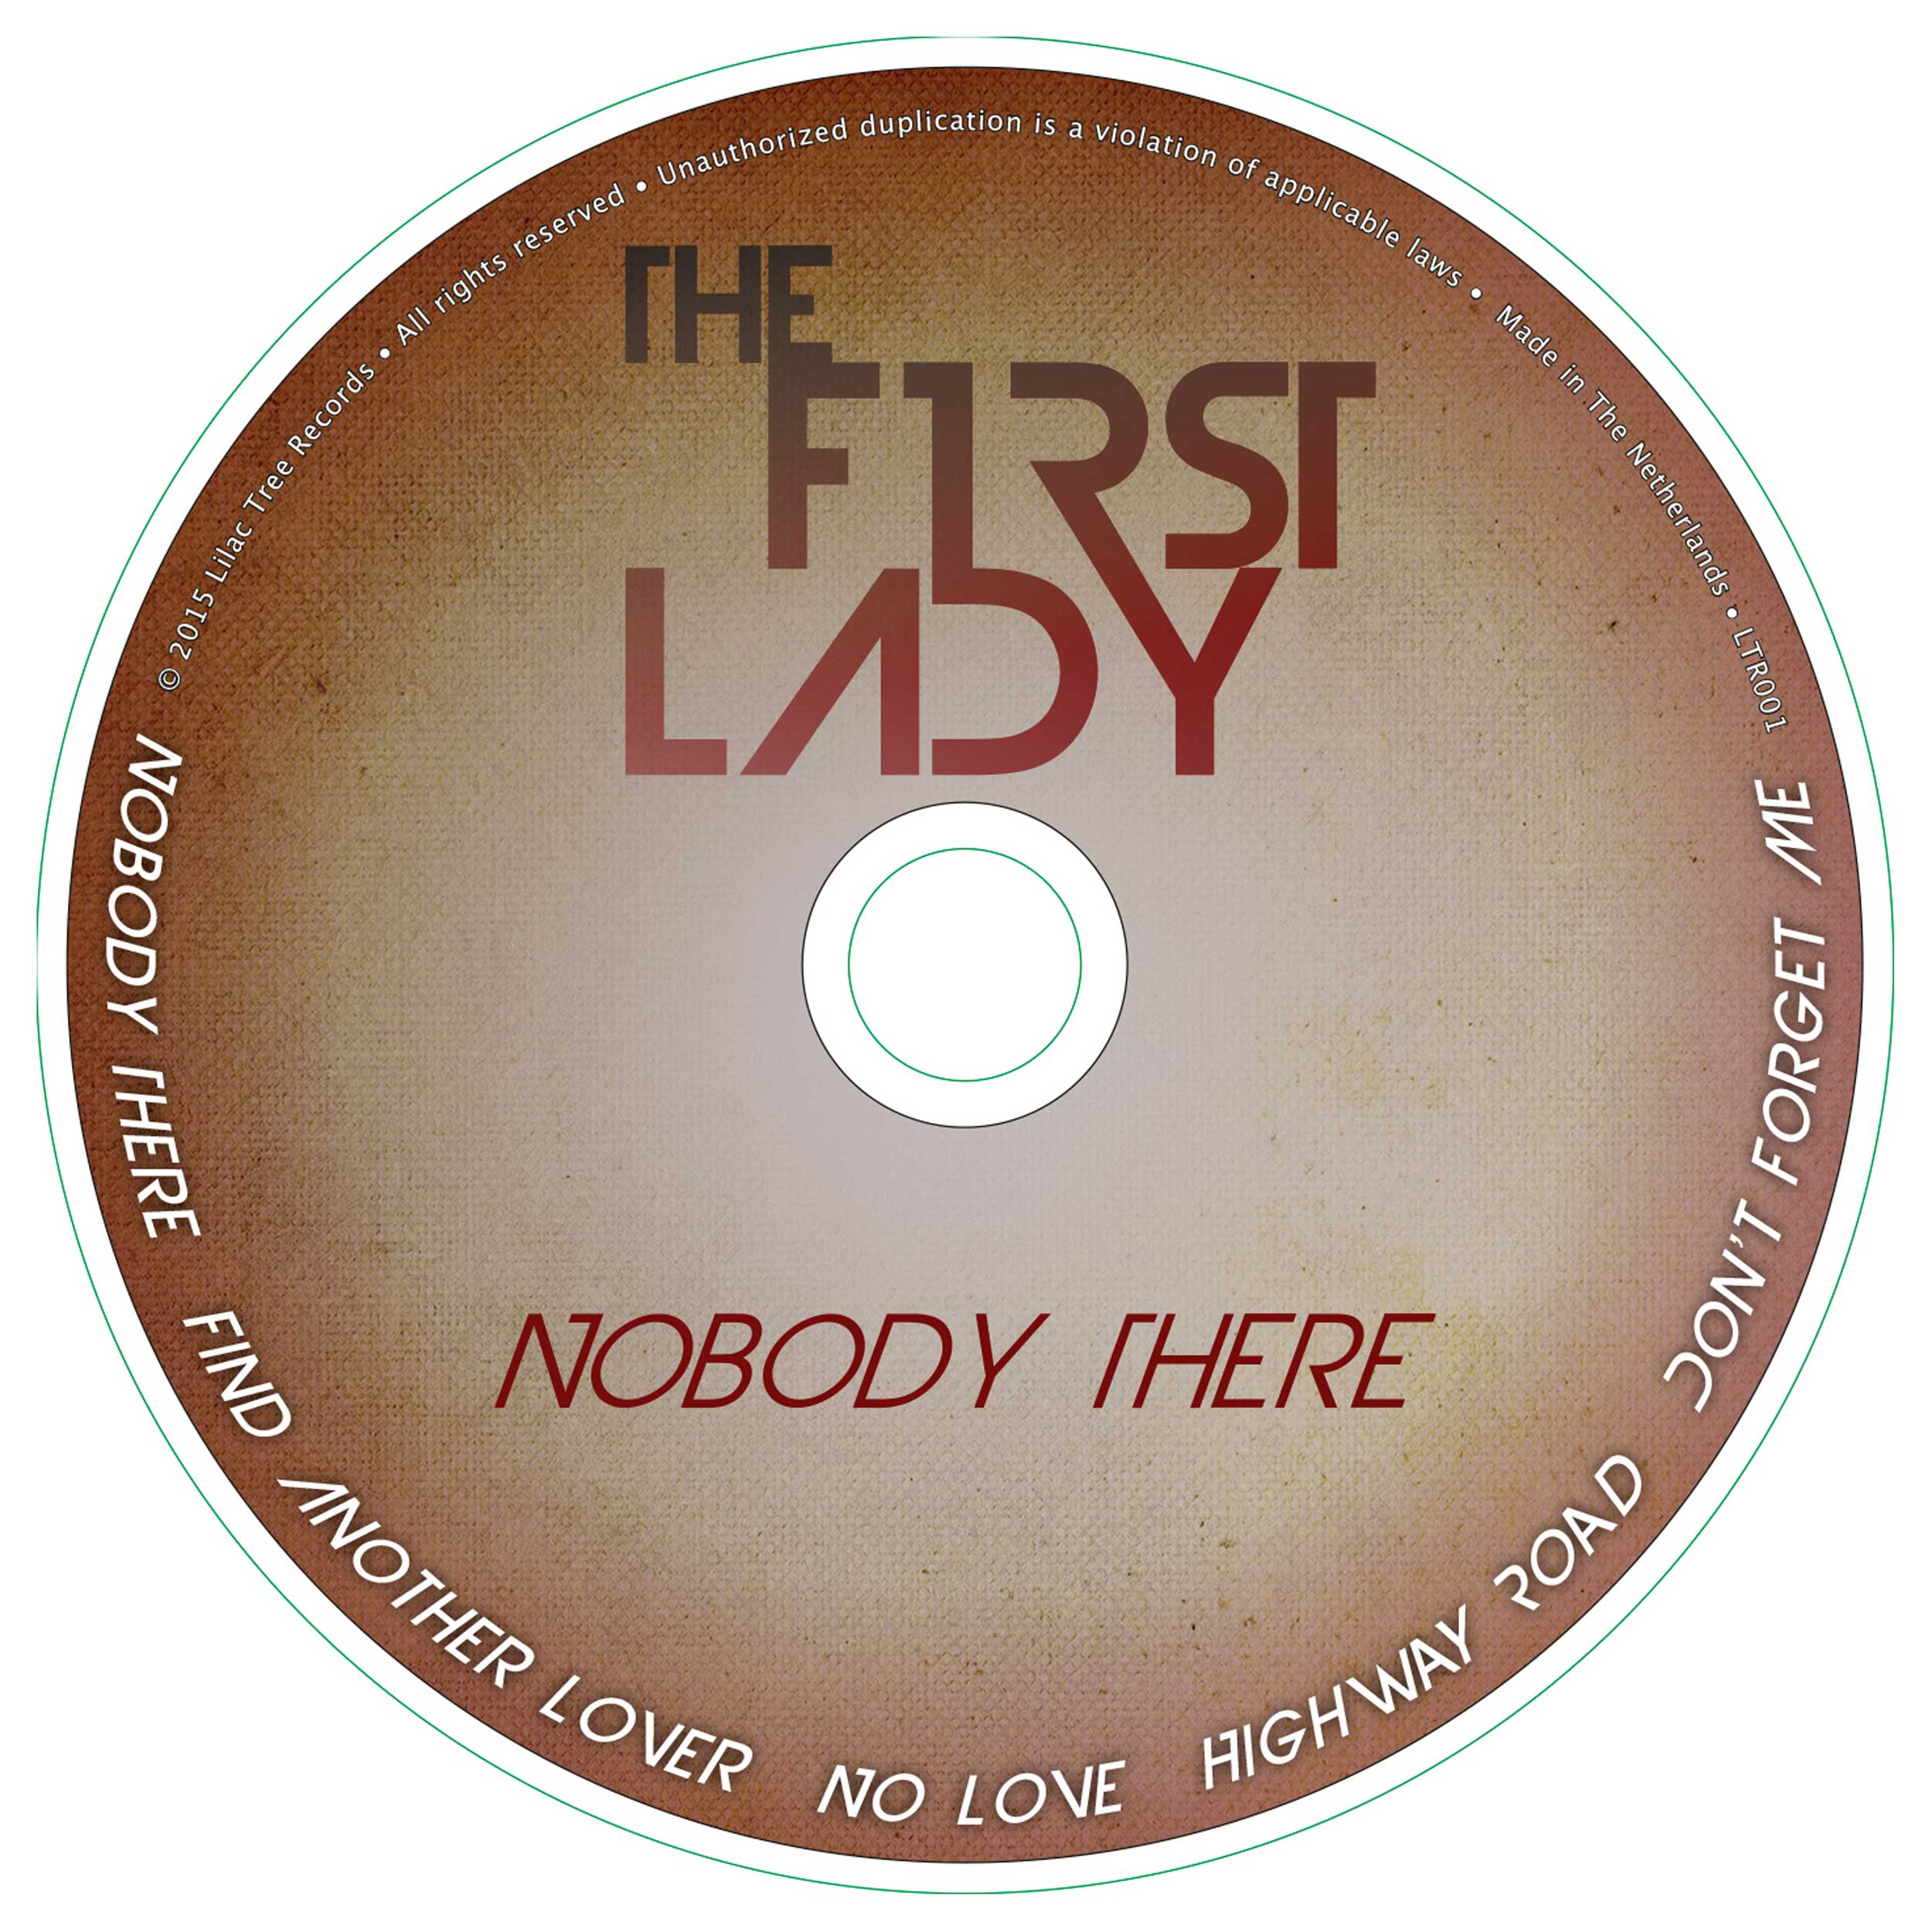 The First Lady - 'Nobody There' CD